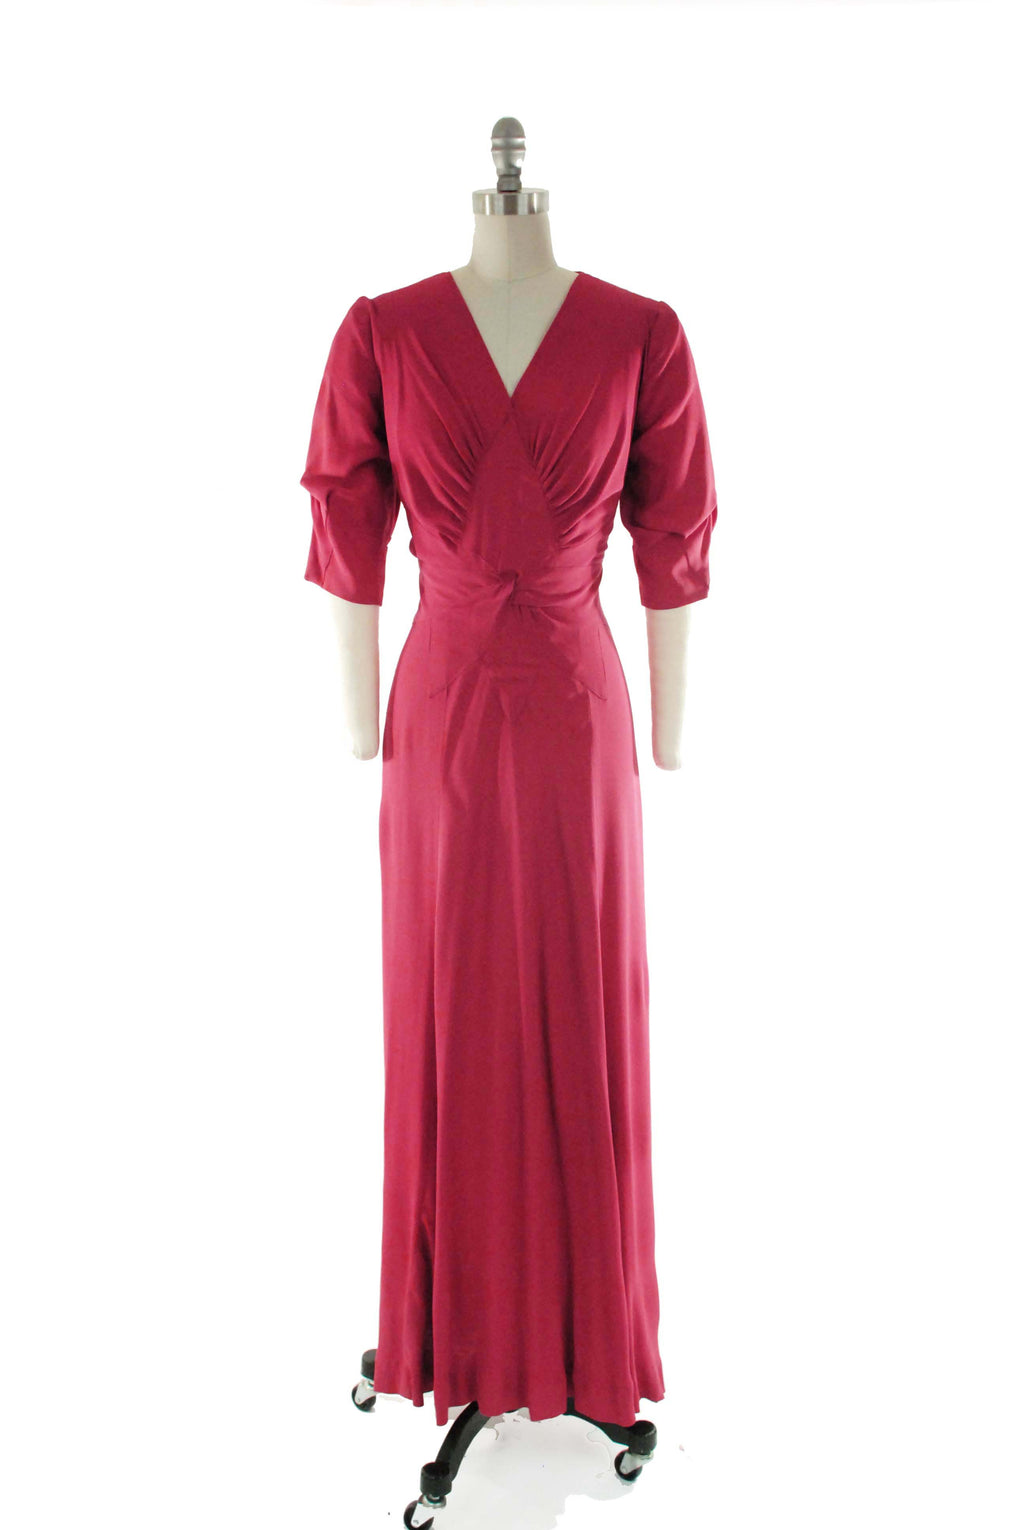 "1930s Evening Gown in Brilliant Pink-Red Rayon Crepe with Elegant Shirring And Trompe L'oeil Twist Front ""Bow"""